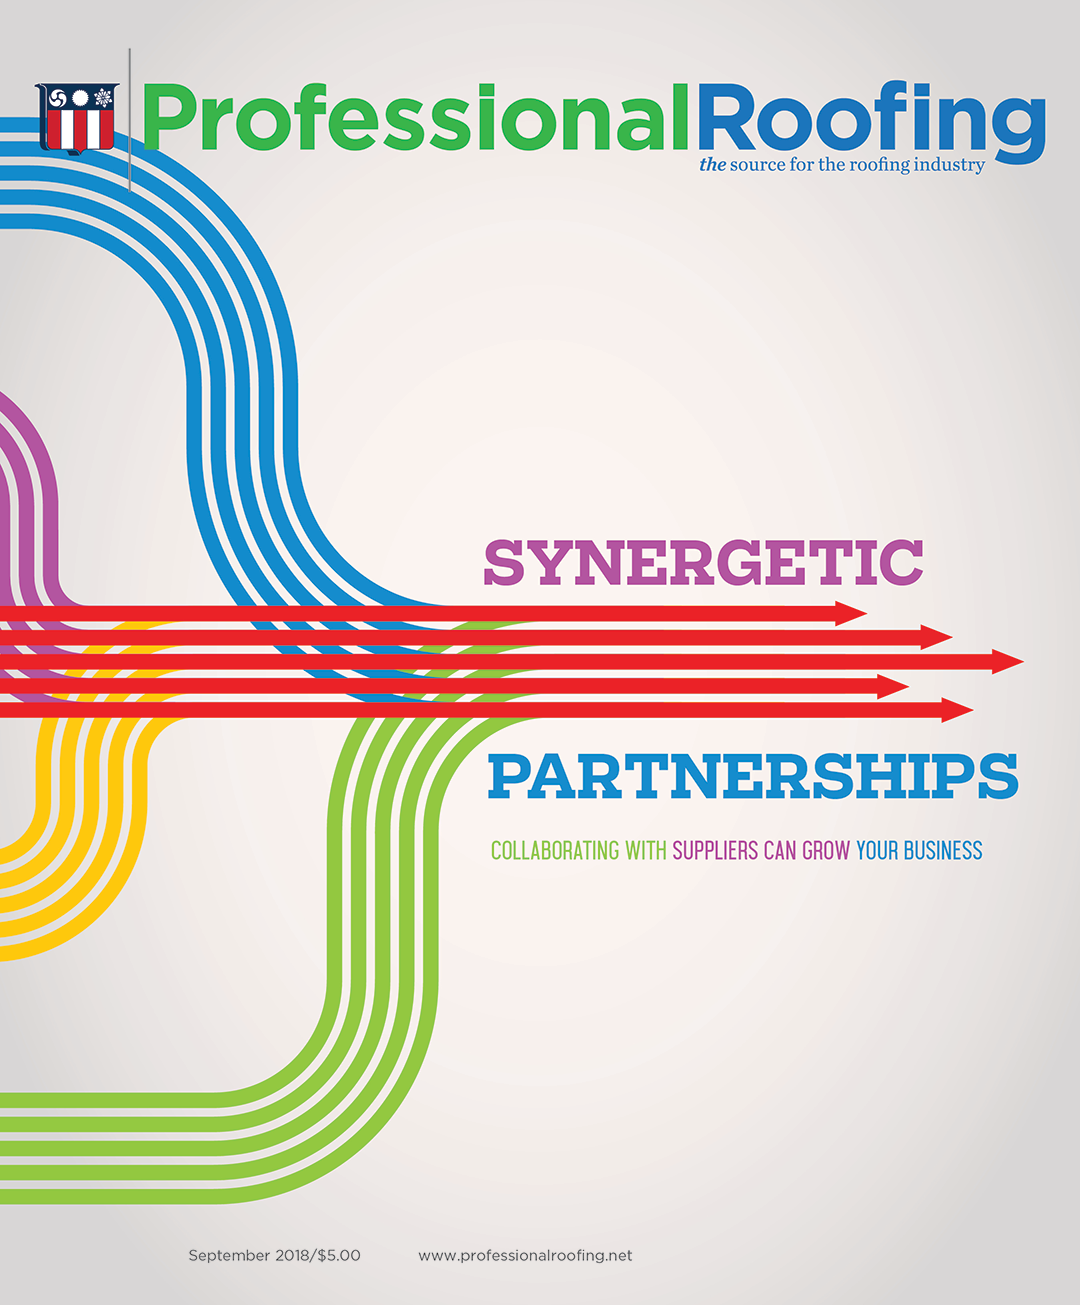 Professional Roofing Magazine 9/1/2018